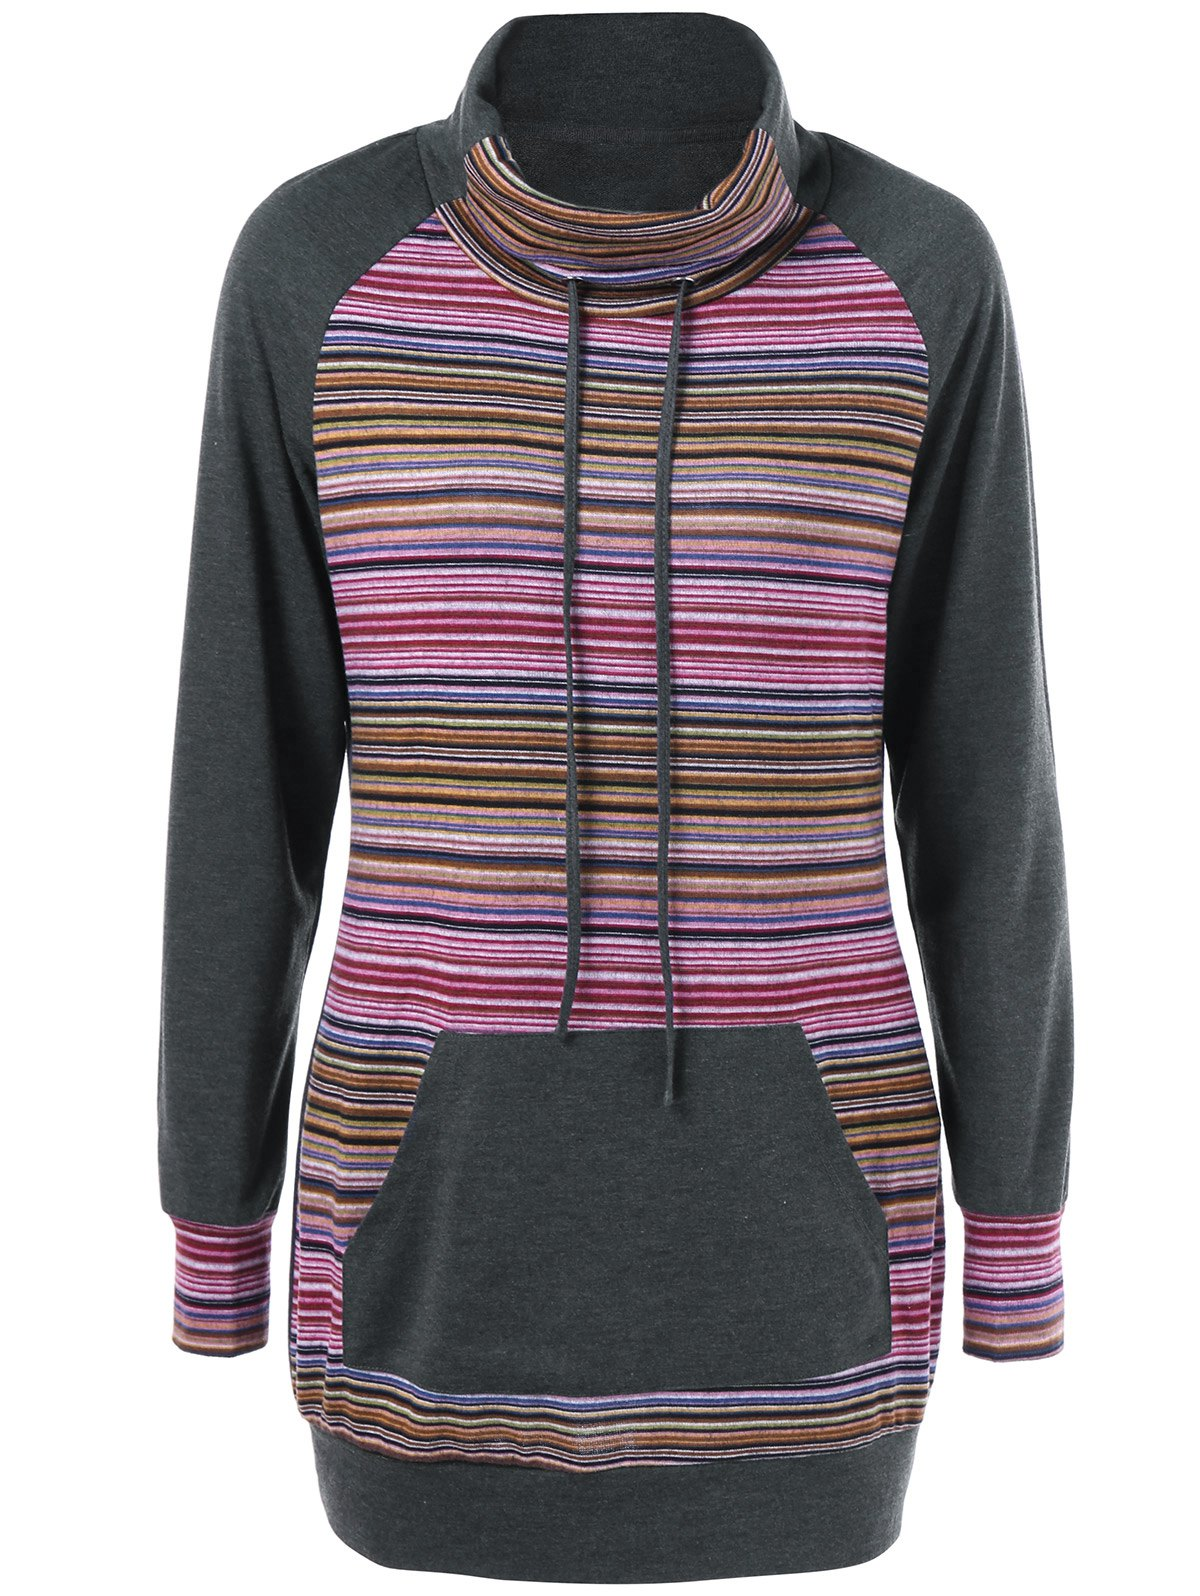 Striped Turtleneck Kangaroo Pocket SweatshirtWOMEN<br><br>Size: XL; Color: GRAY; Material: Polyester,Spandex; Shirt Length: Long; Sleeve Length: Full; Style: Fashion; Pattern Style: Striped; Season: Fall,Spring,Winter; Weight: 0.390kg; Package Contents: 1 x Sweatshirt;